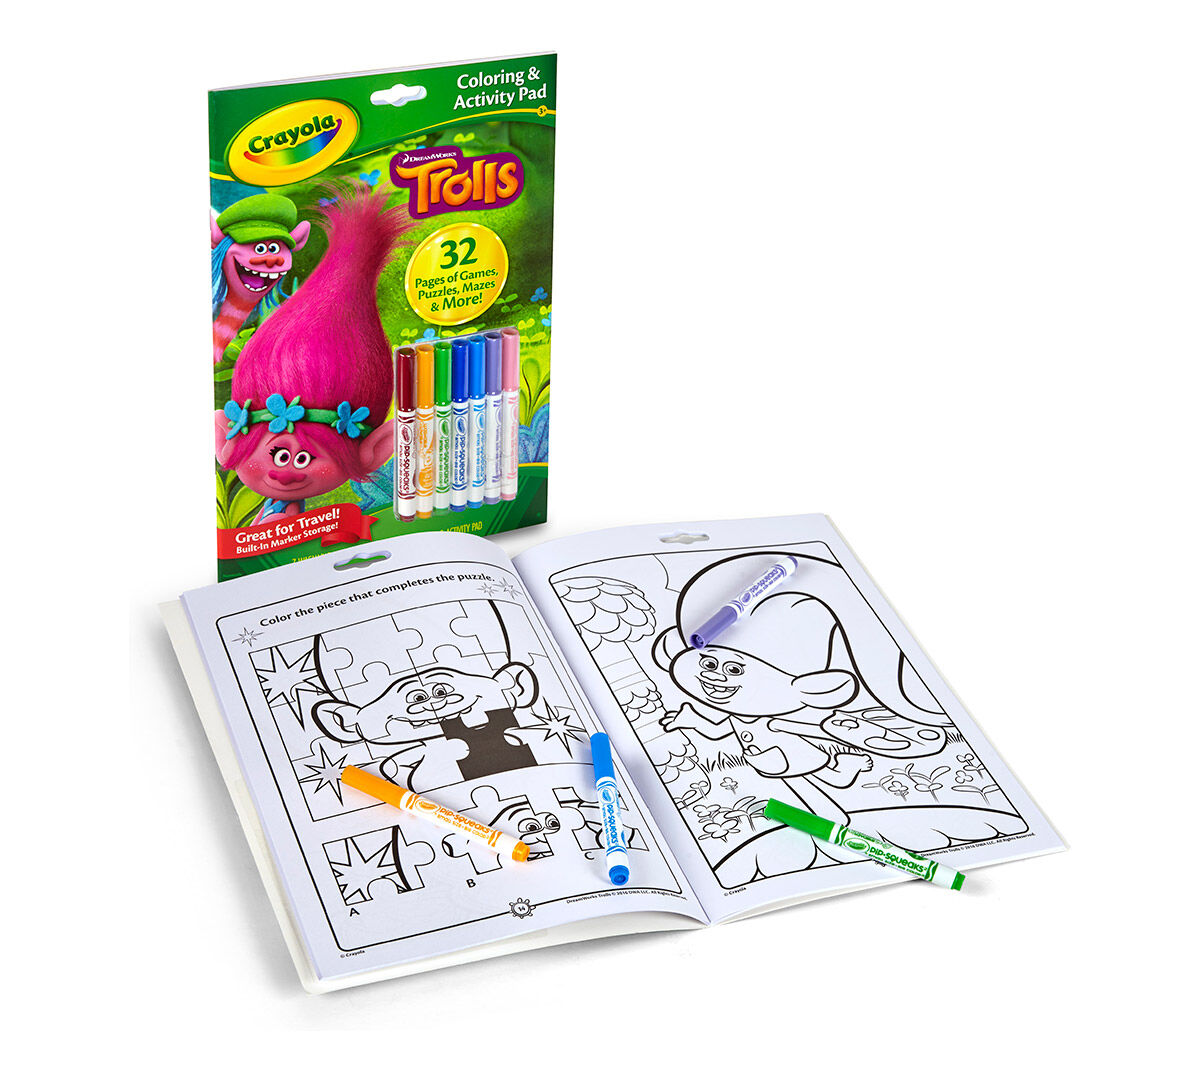 Coloring & Activity Book, Trolls - Crayola